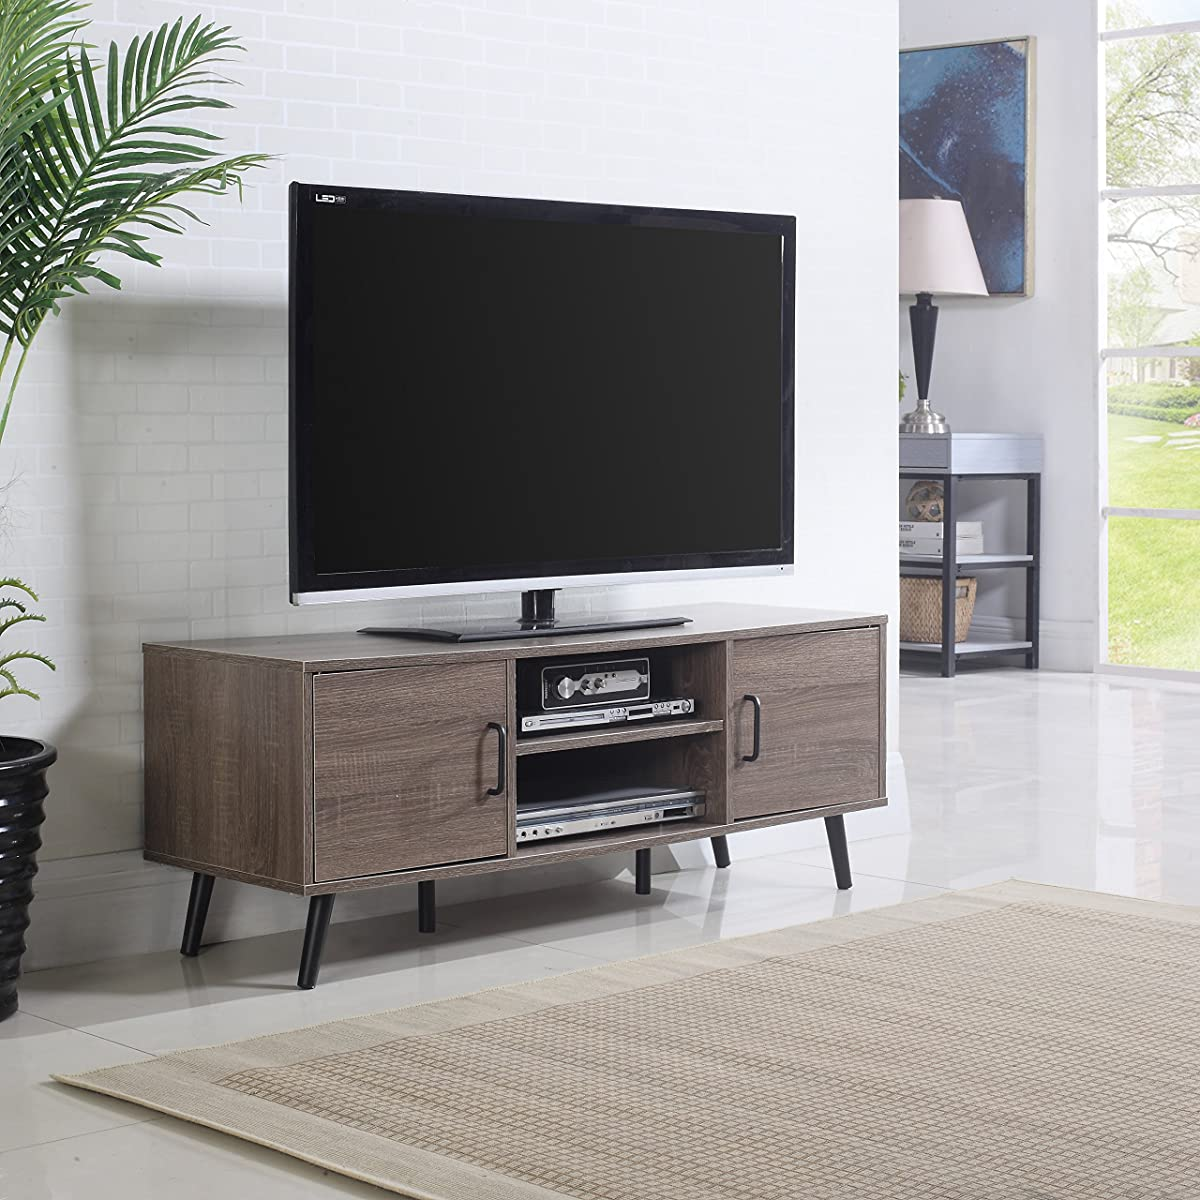 Mid century modern tv stand ash for Stylish tv stands furniture